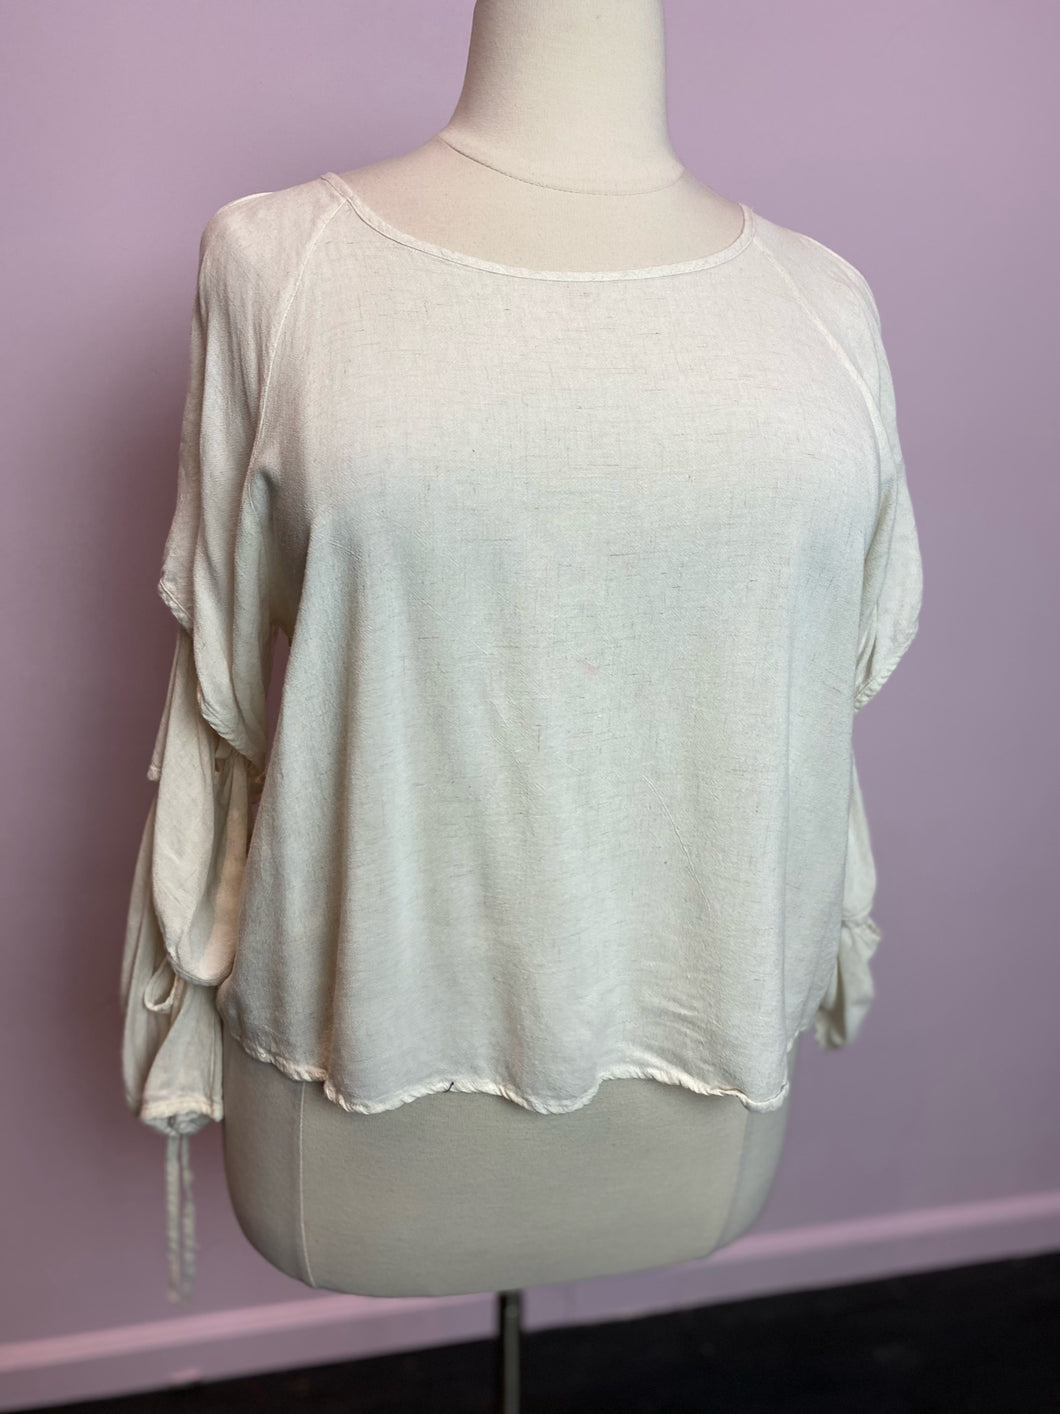 Cream Poet Sleeve Blouse by Loveriche, Size 2X